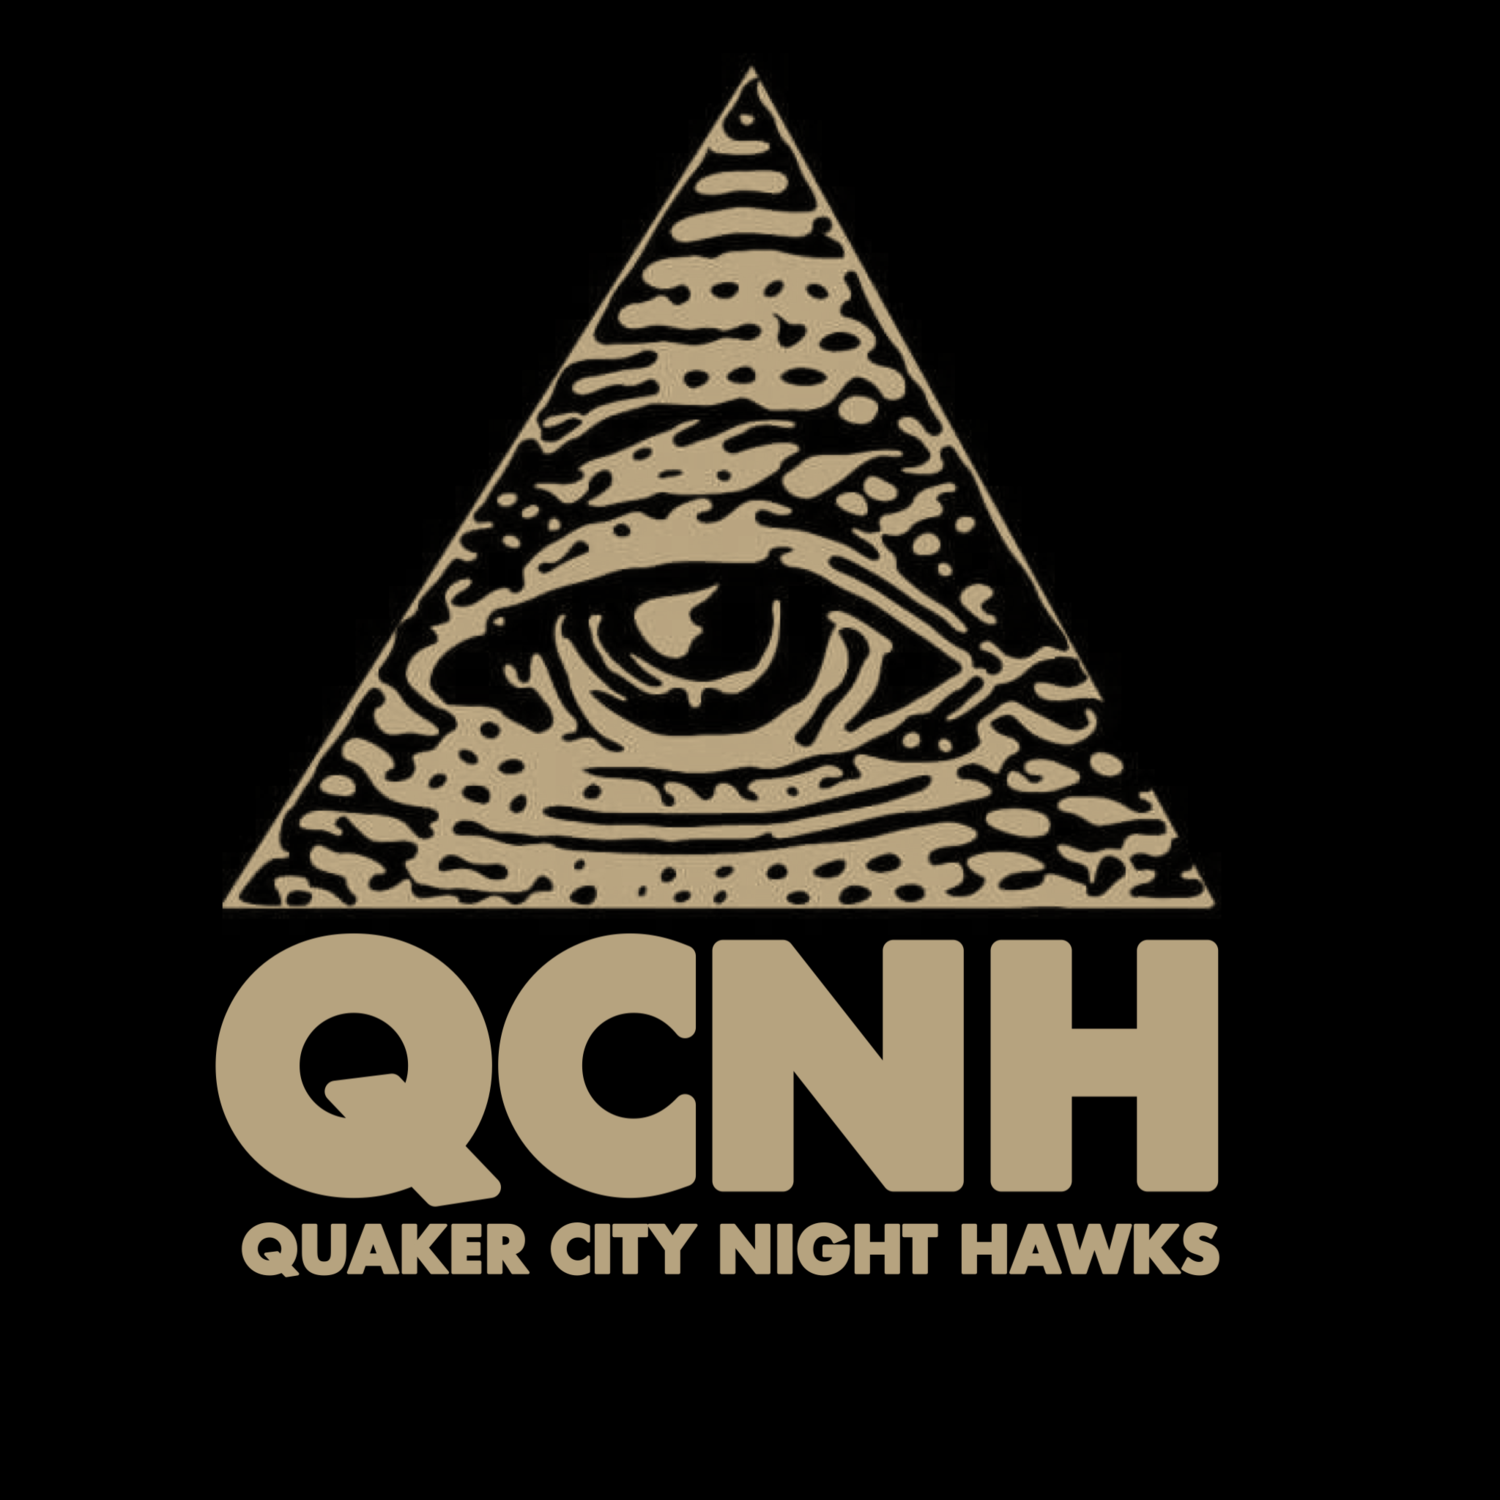 Quaker City Night Hawks